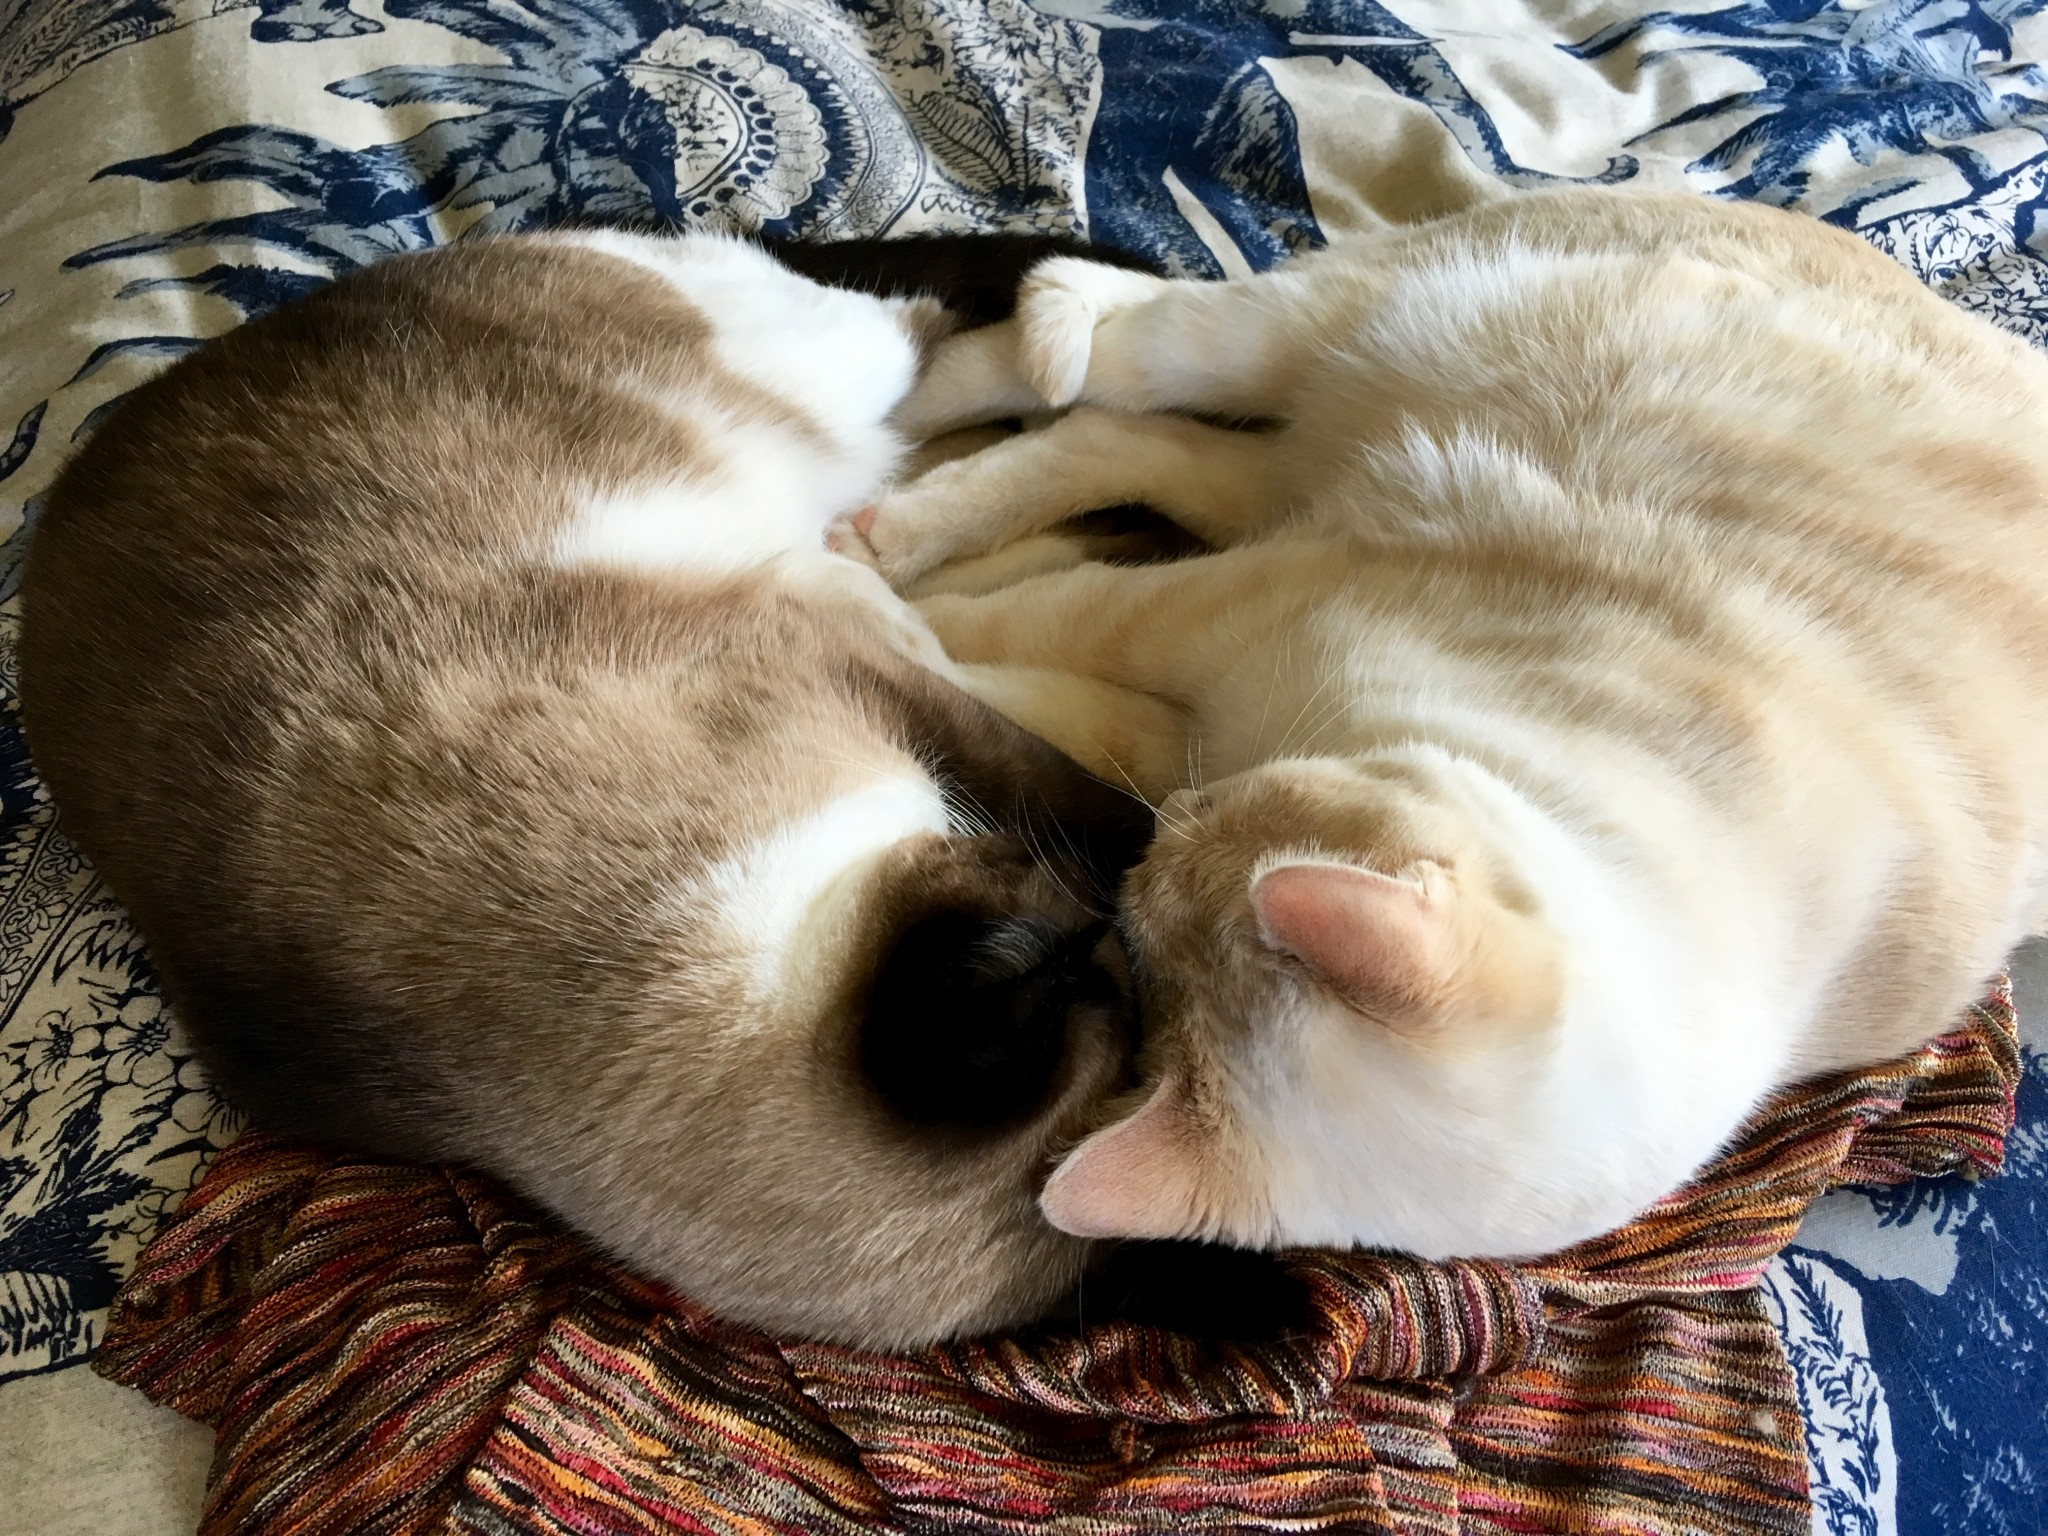 Posy & Mister snuggled to form a heart.